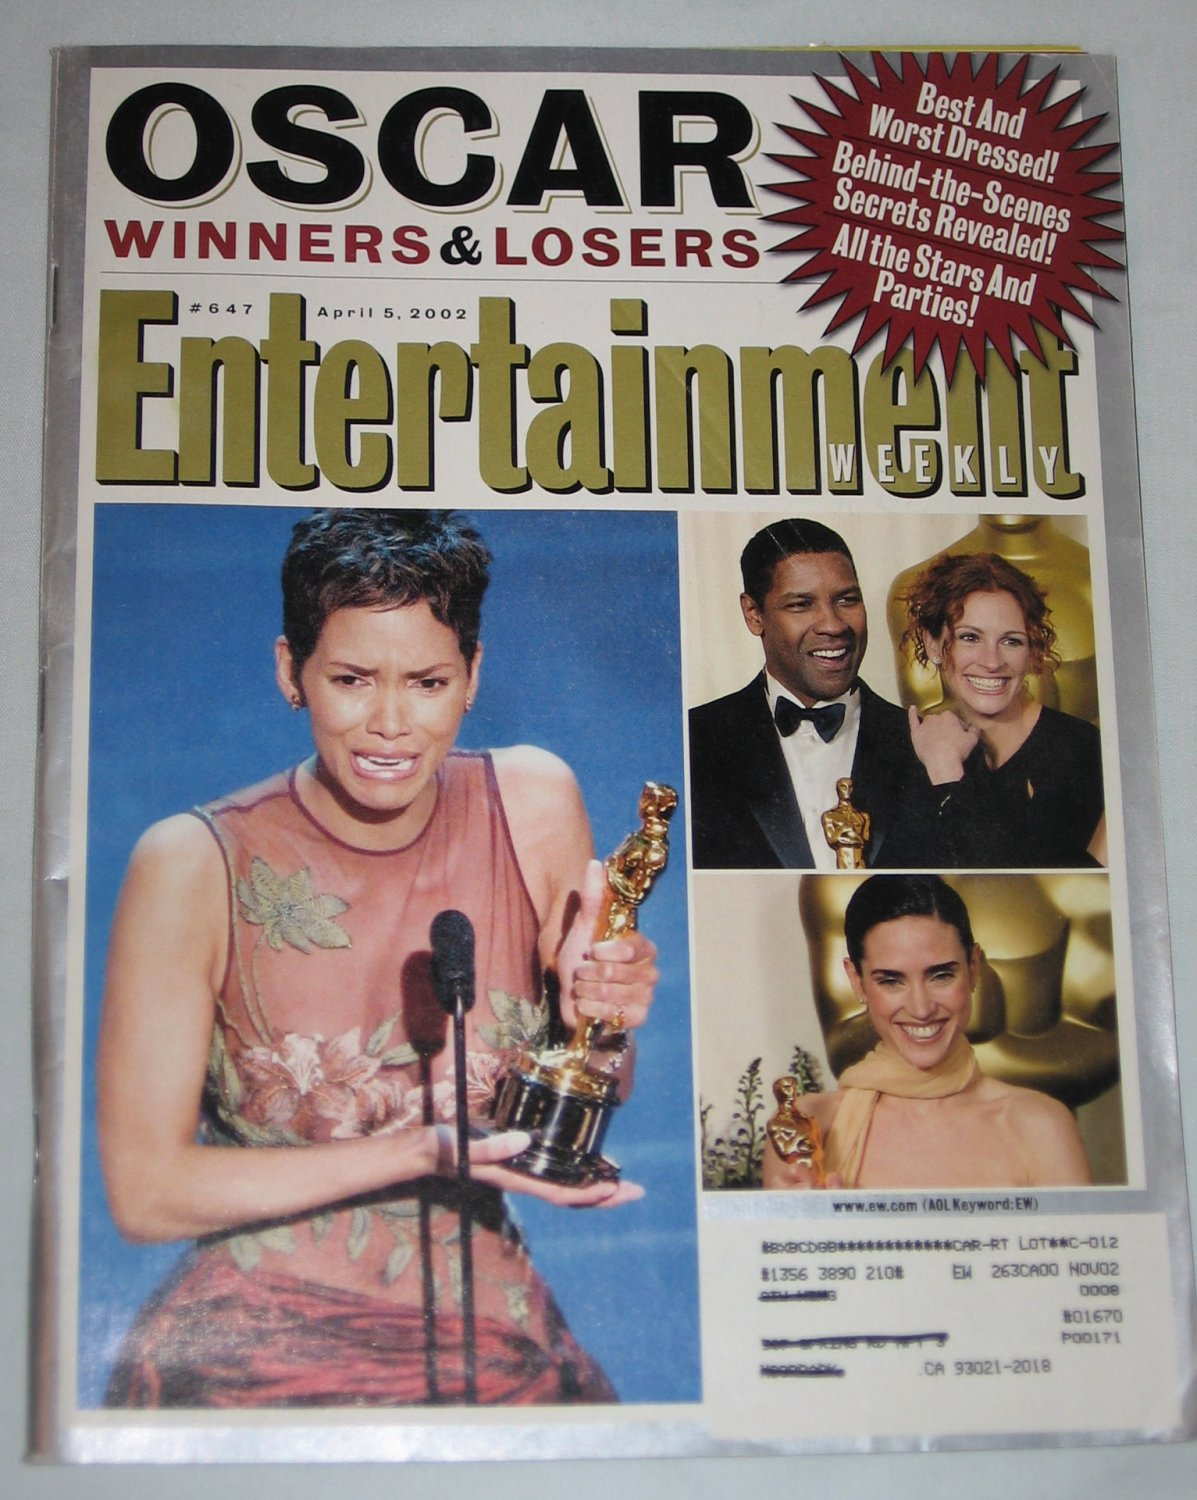 ENTERTAINMENT WEEKLY Magazine 647 Halle Berry Oscar Winners Losers Ninja Turtles April 5 2002